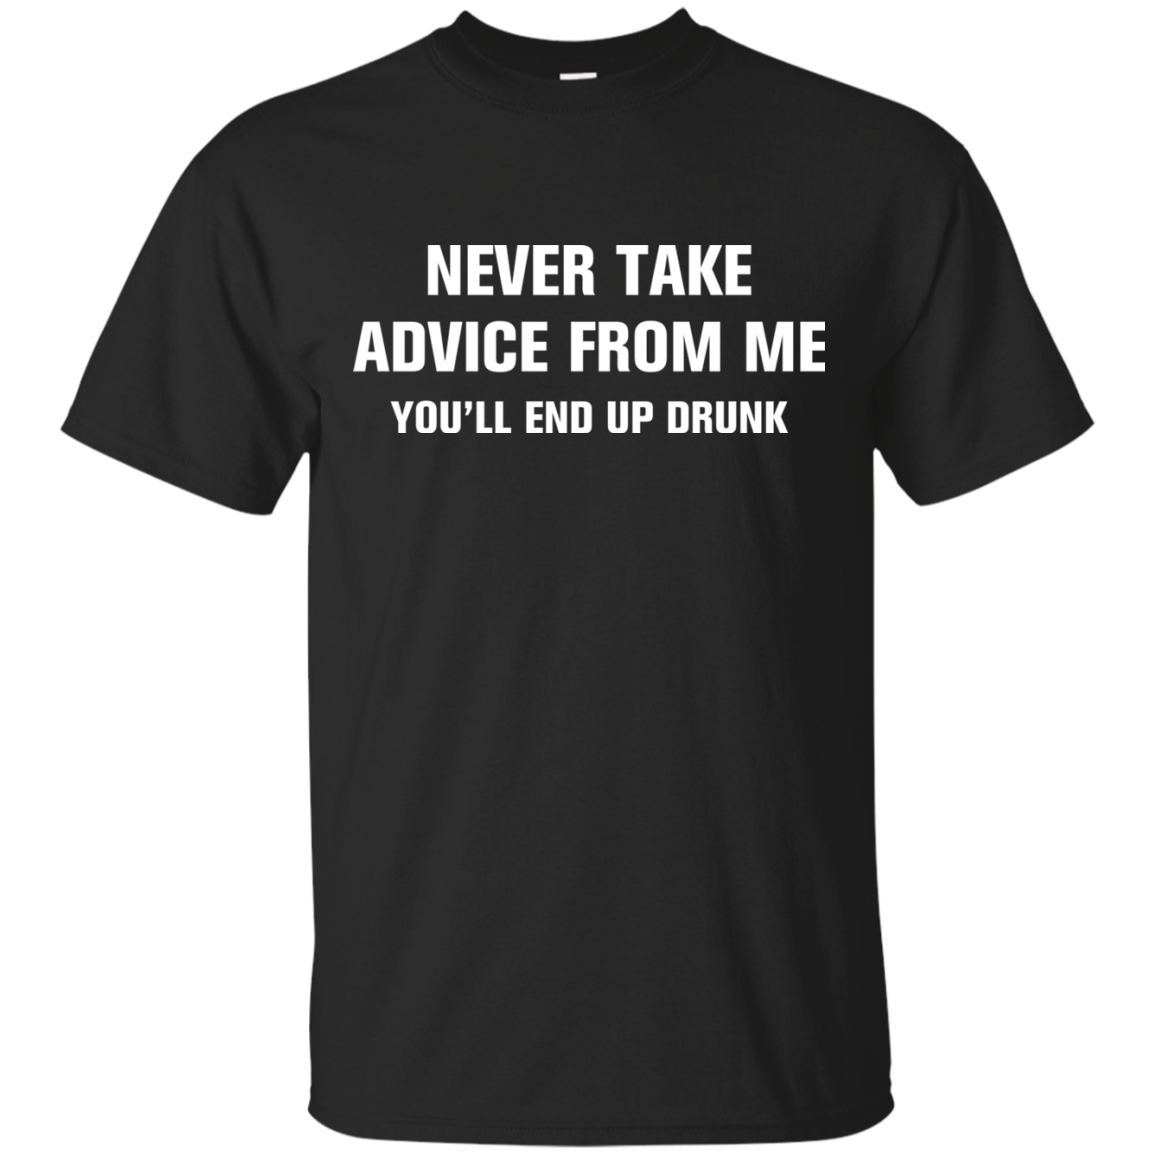 Never take advice from me you'll end up drunk tshirt, tank, vneck, hoodie